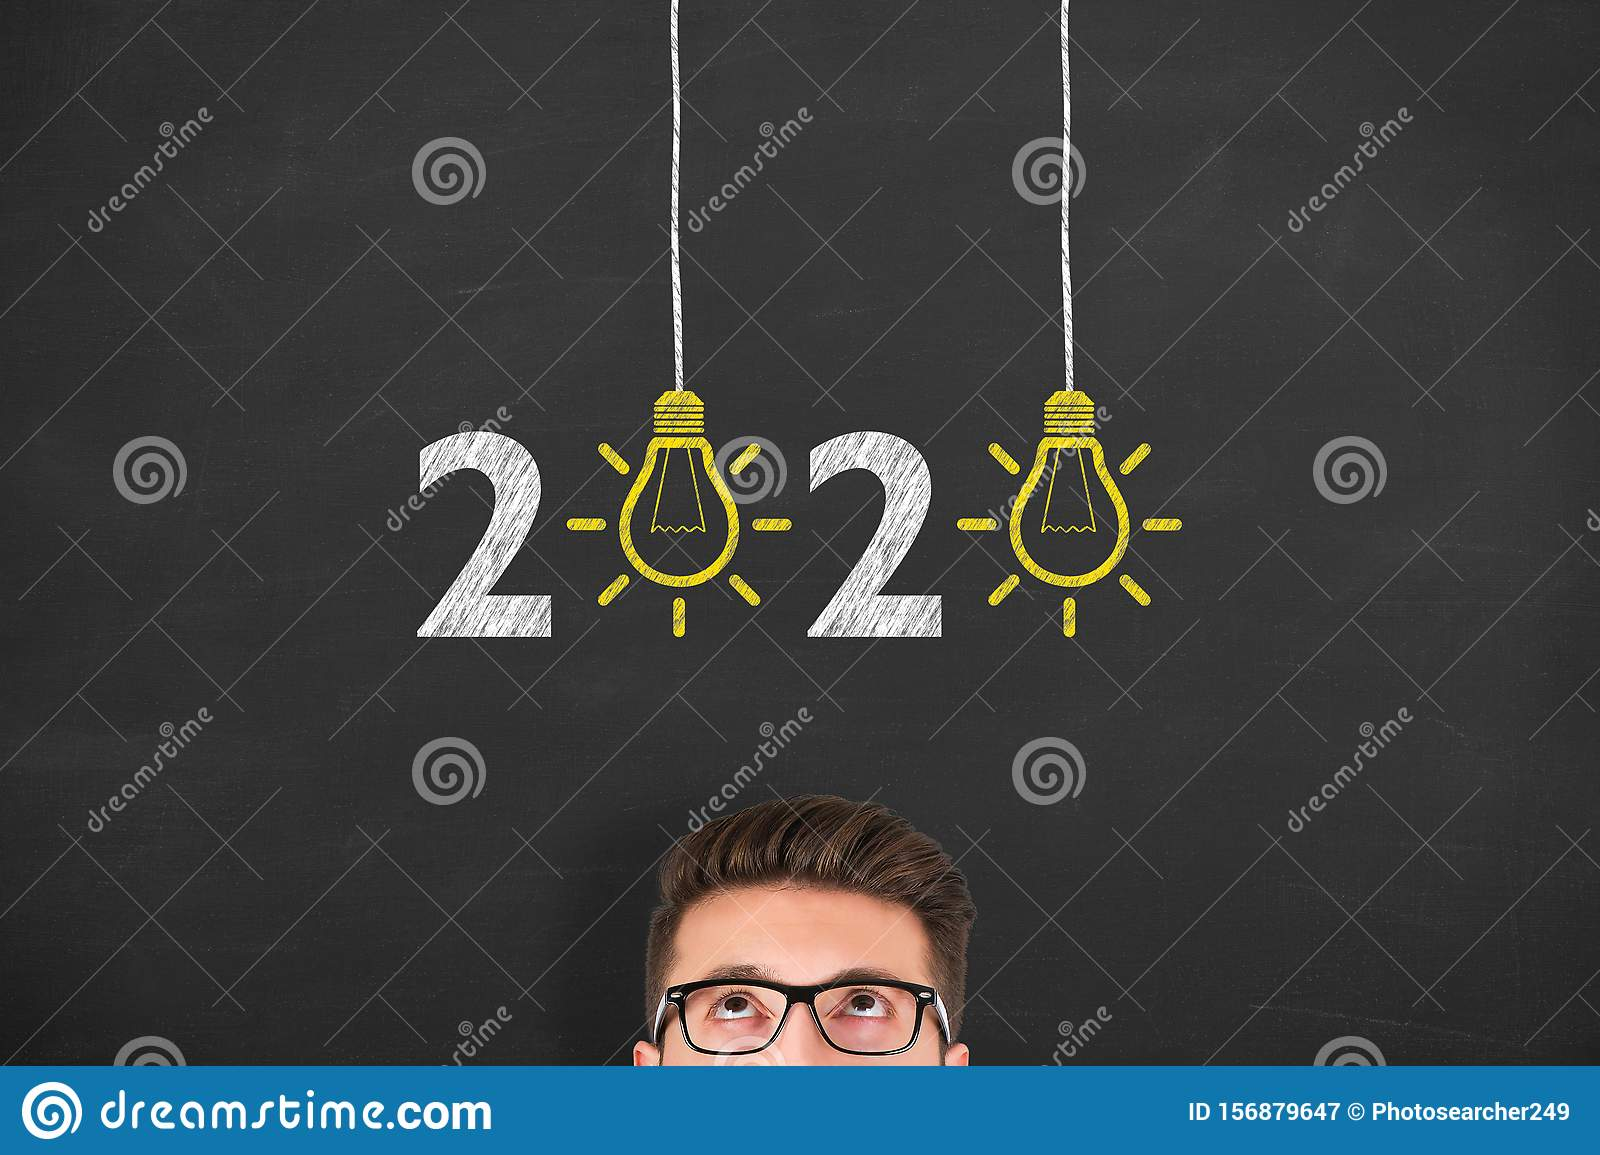 New Year 2020 Idea Concepts over Human Head on Blackboard Background